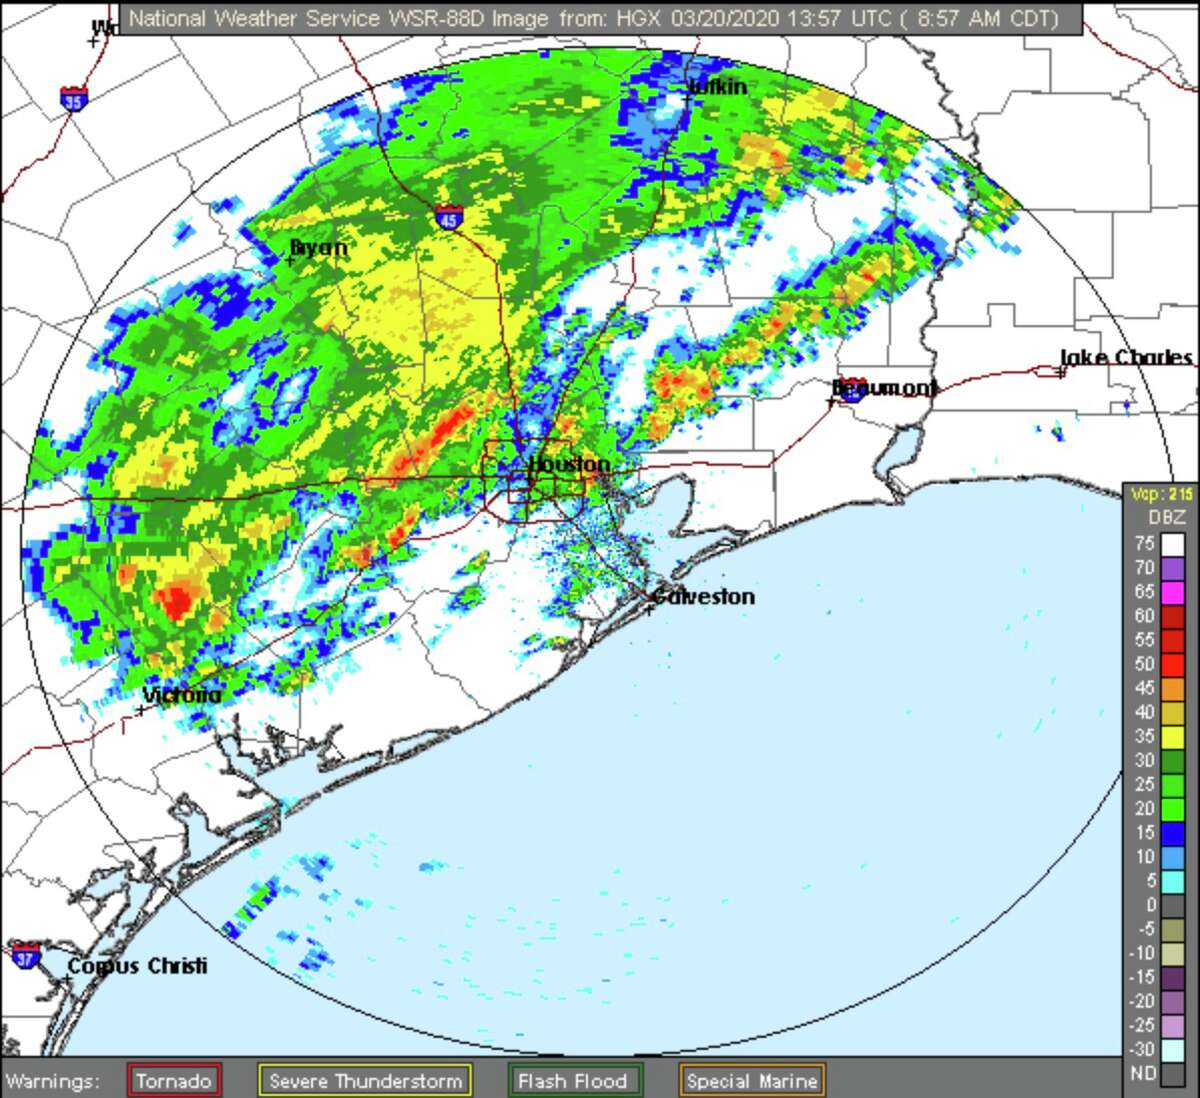 A radar image over Houston on Friday, March 20, 2020.